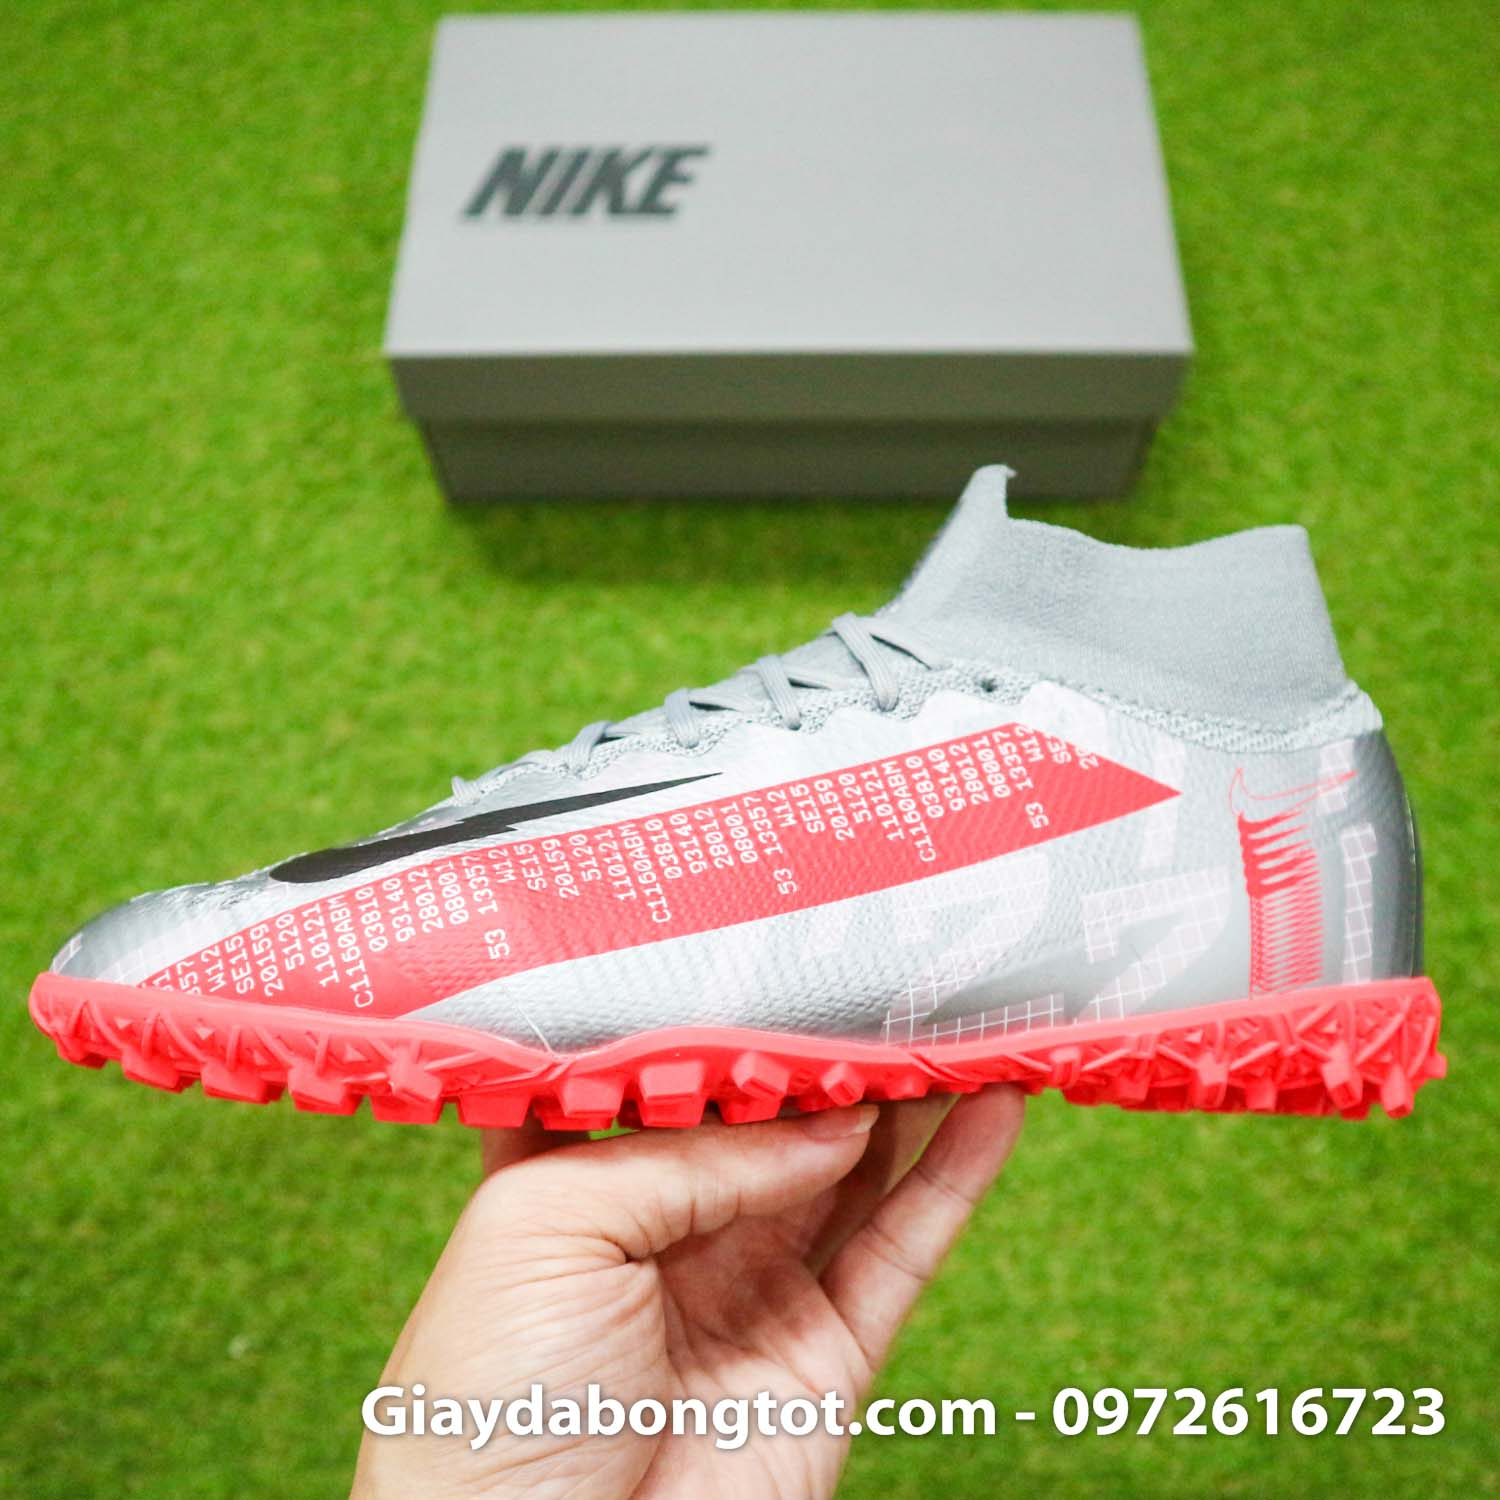 Giay da banh co cao nike mercurial superfly 7 elite tf xam vach do (12)